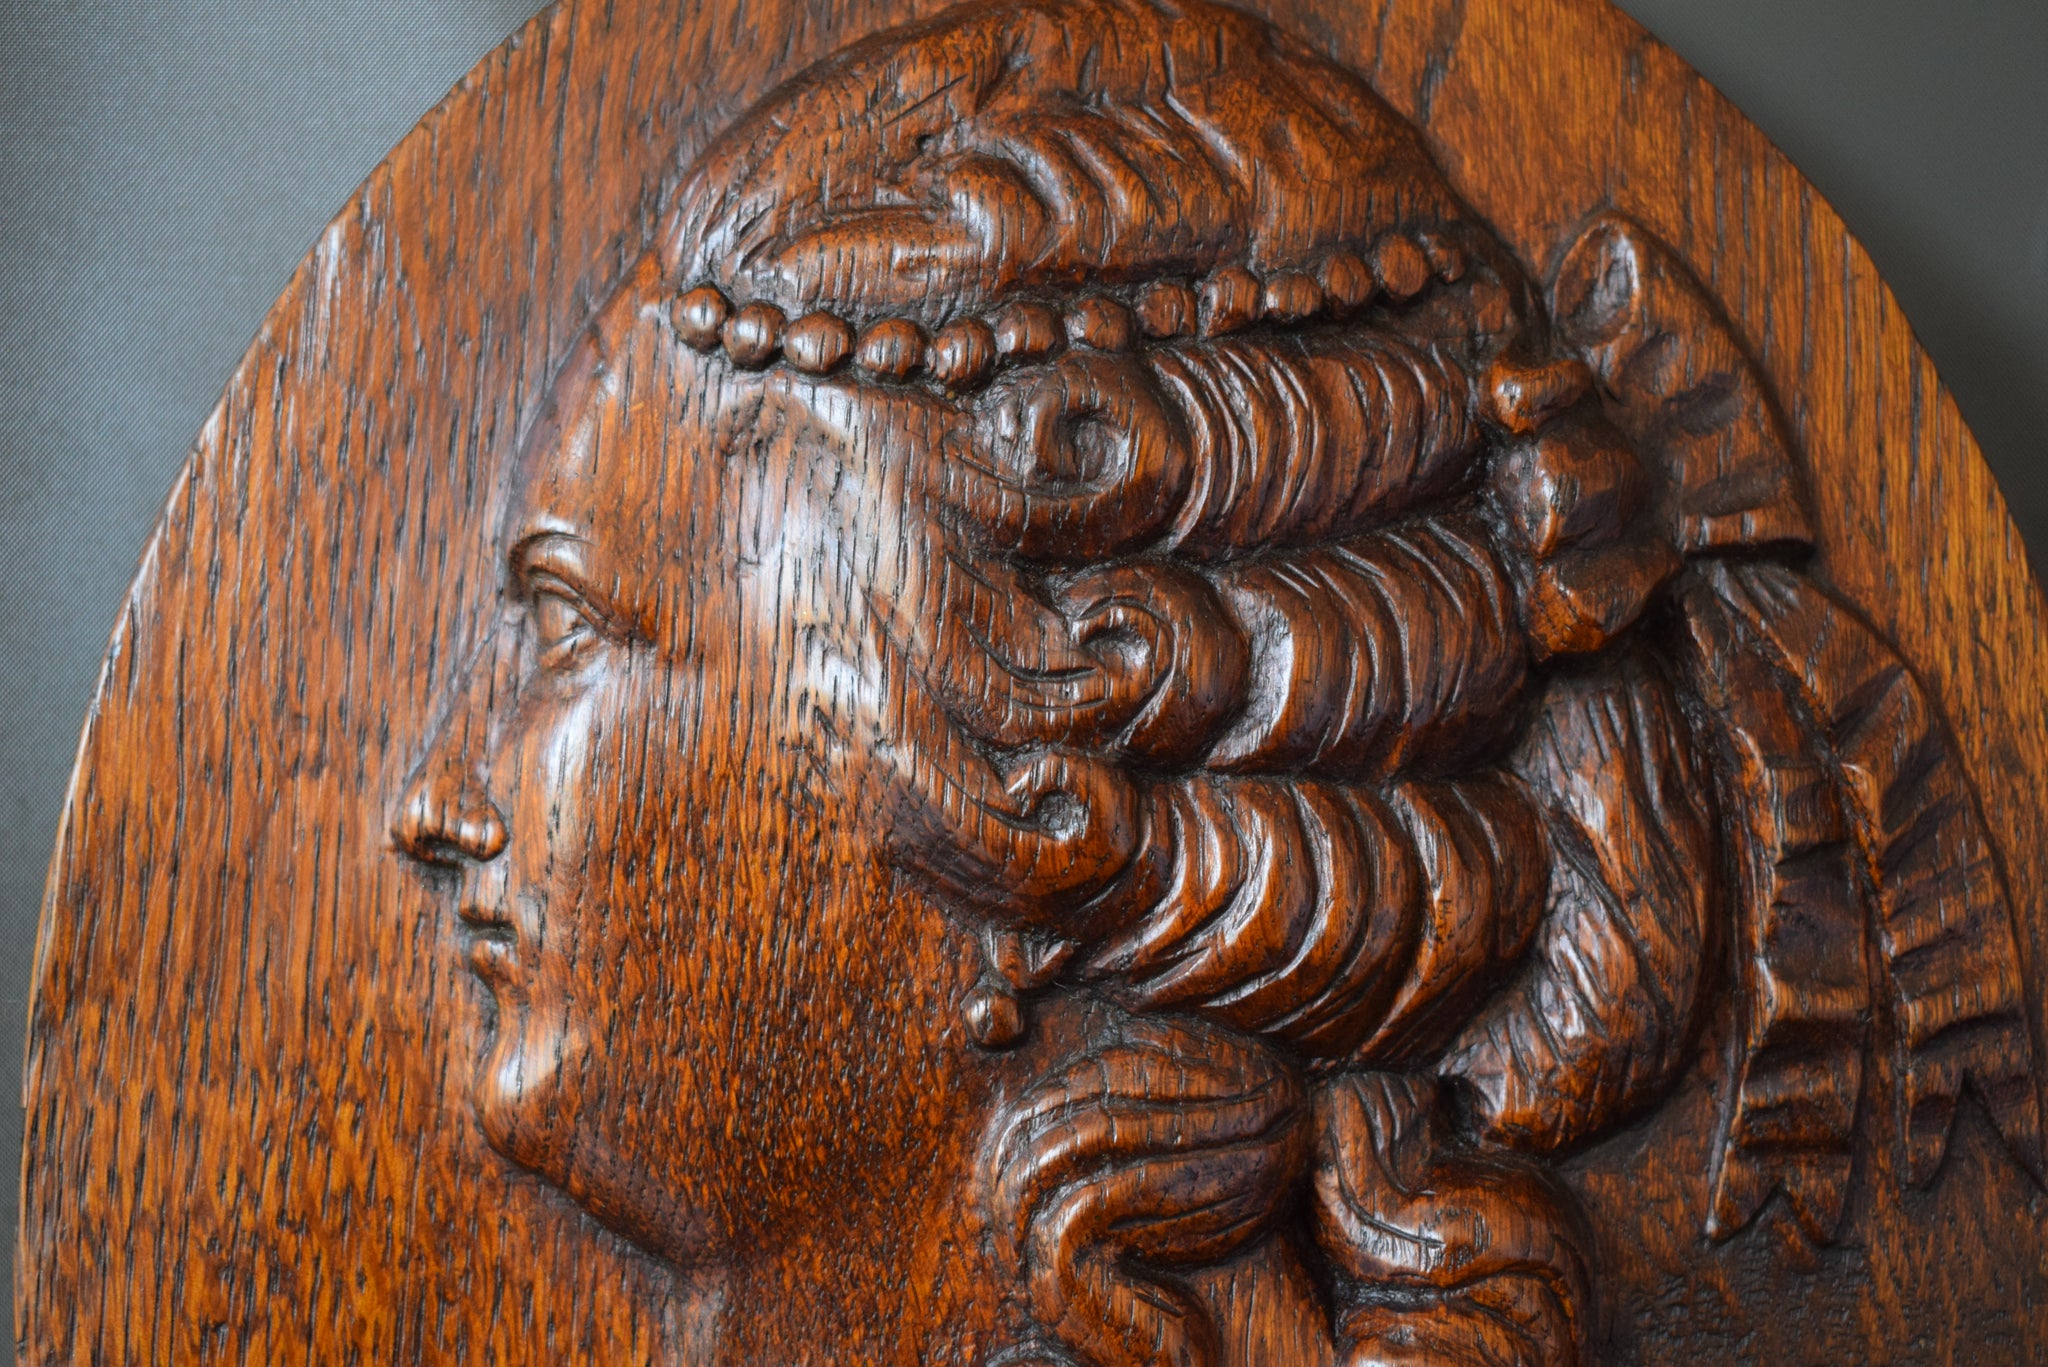 Antique French Hand Carved Oak Wood Wall Medallion Panel with Profile Portrait of a 18th Century Noble Lady Woman